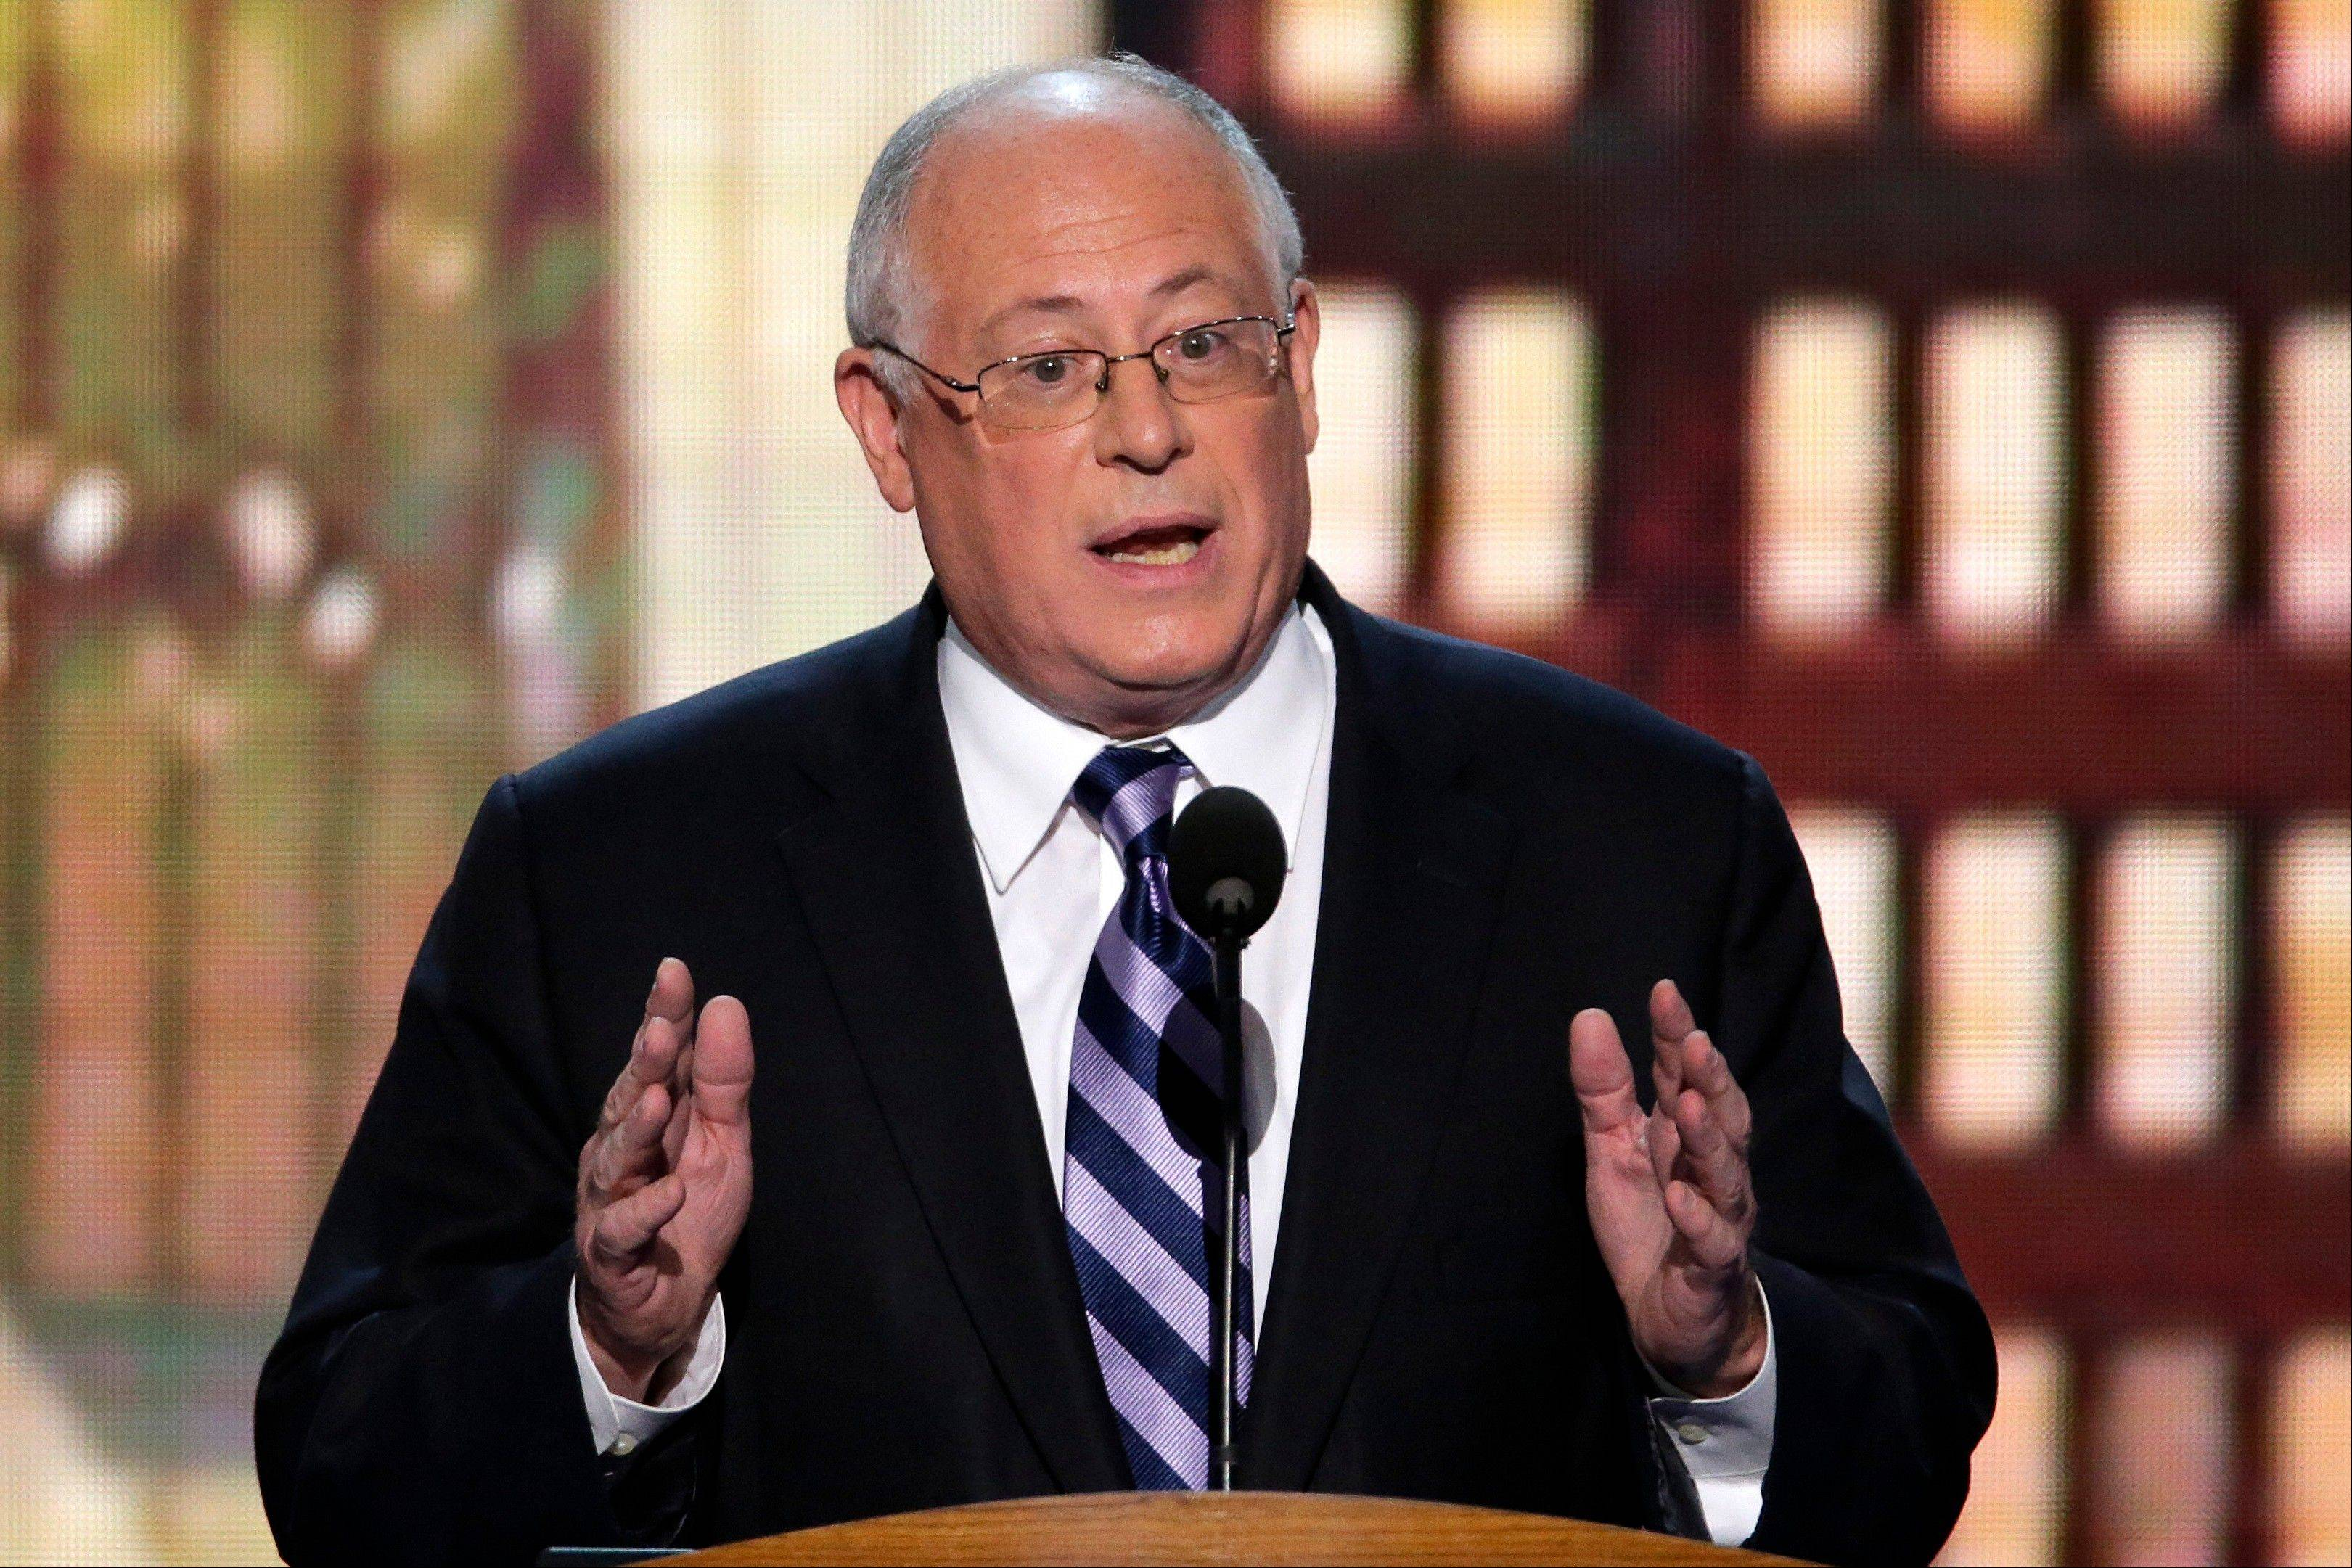 Gov. Pat Quinn says he has reached out to top lawmakers and sponsors of a proposed assault weapons ban.